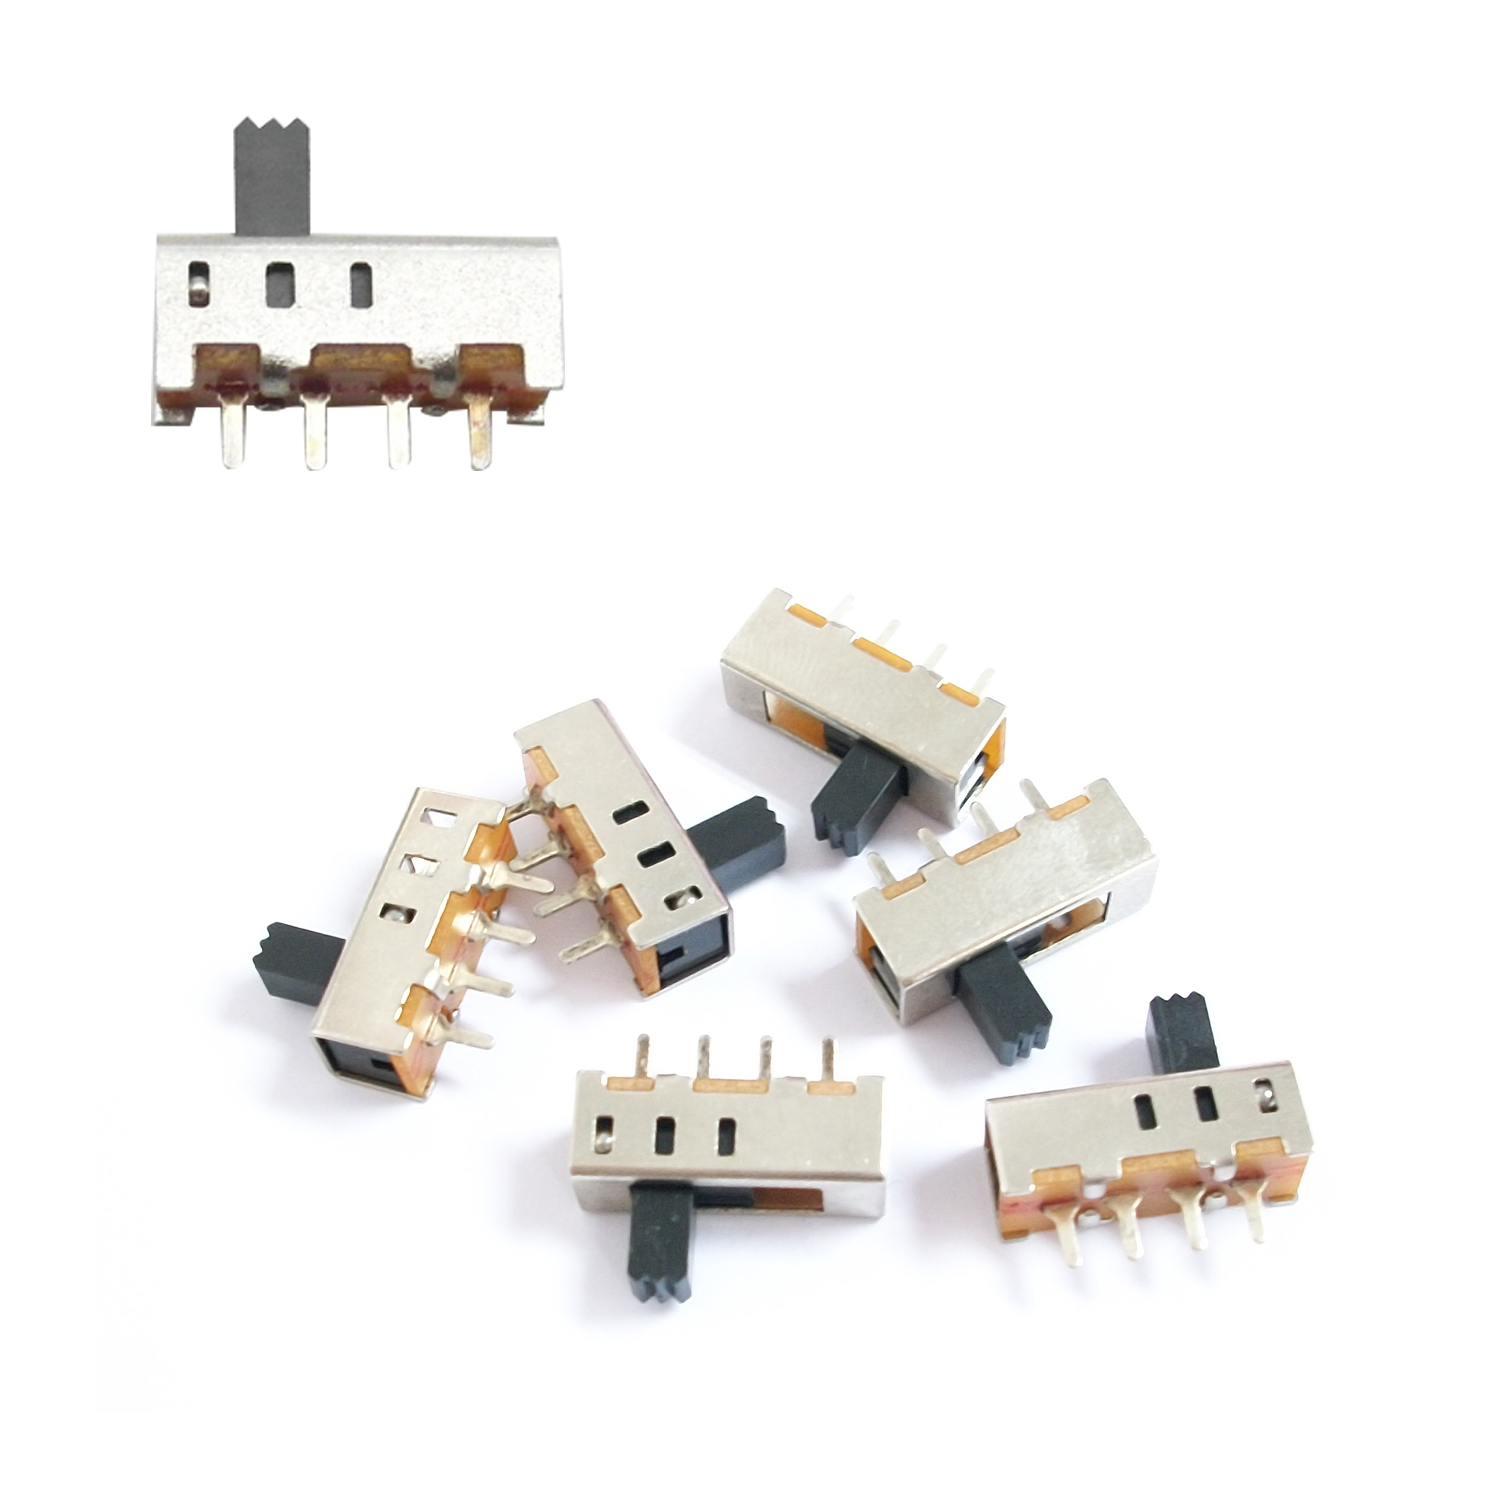 50 pc 4 Pin PCB 3 Position SPDT Mini Size Slide Switch ON-OFF ...